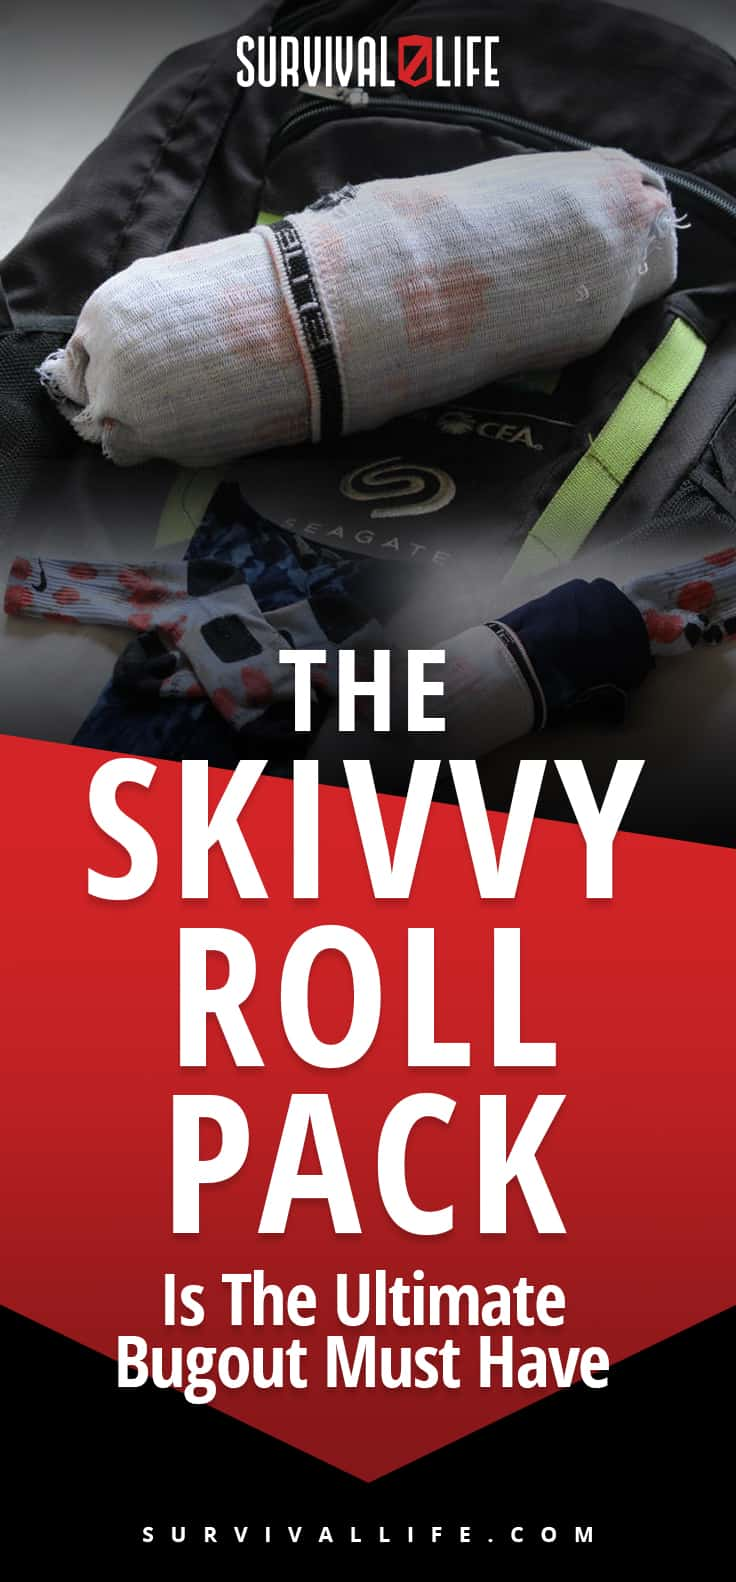 The Skivvy Roll Pack Is The Ultimate Bugout Must Have